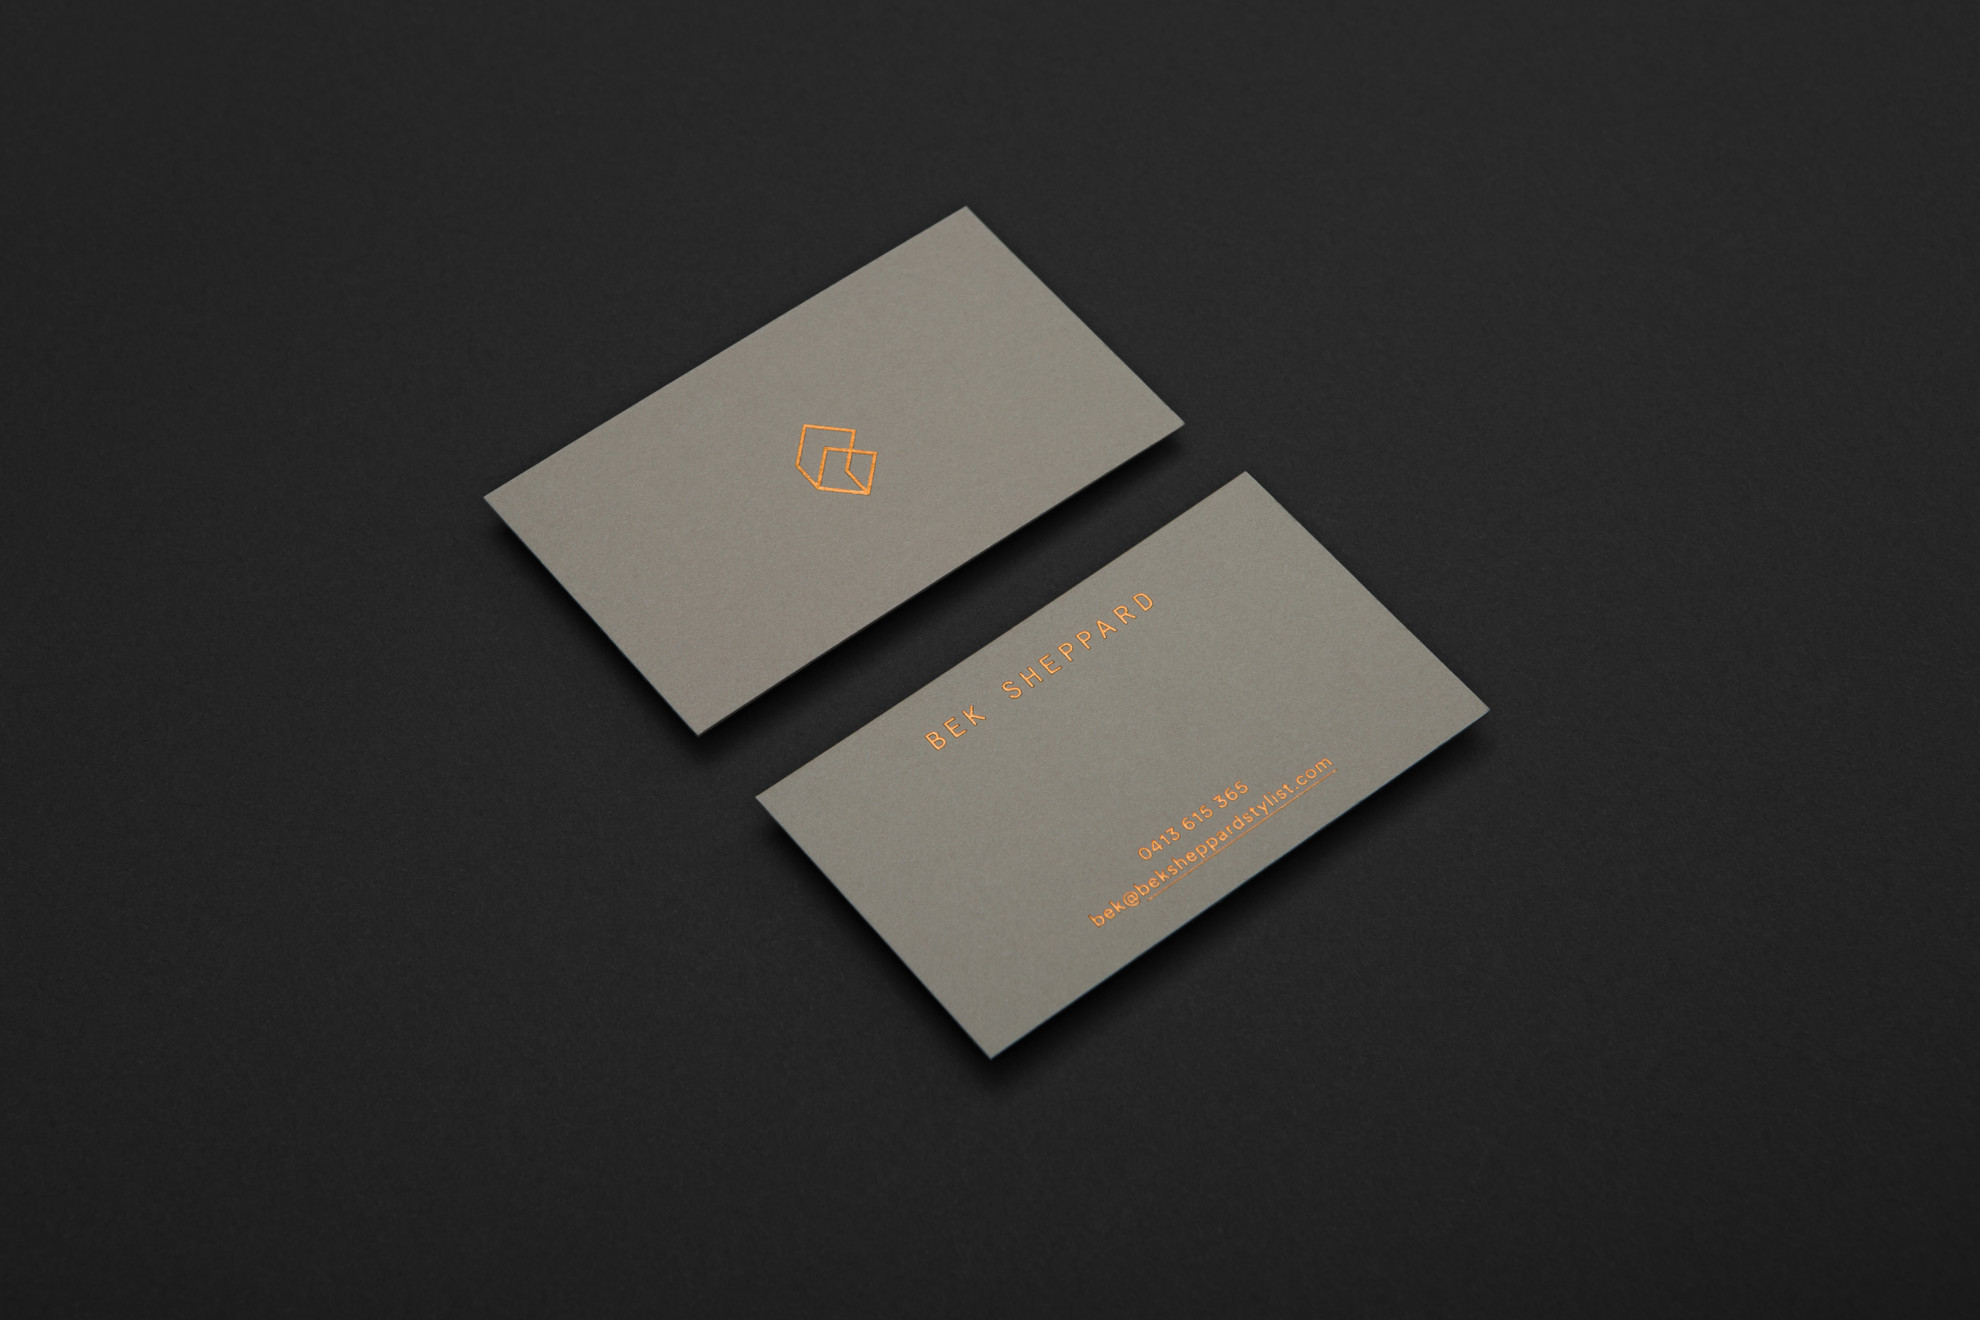 Bek Sheppard - Business Card